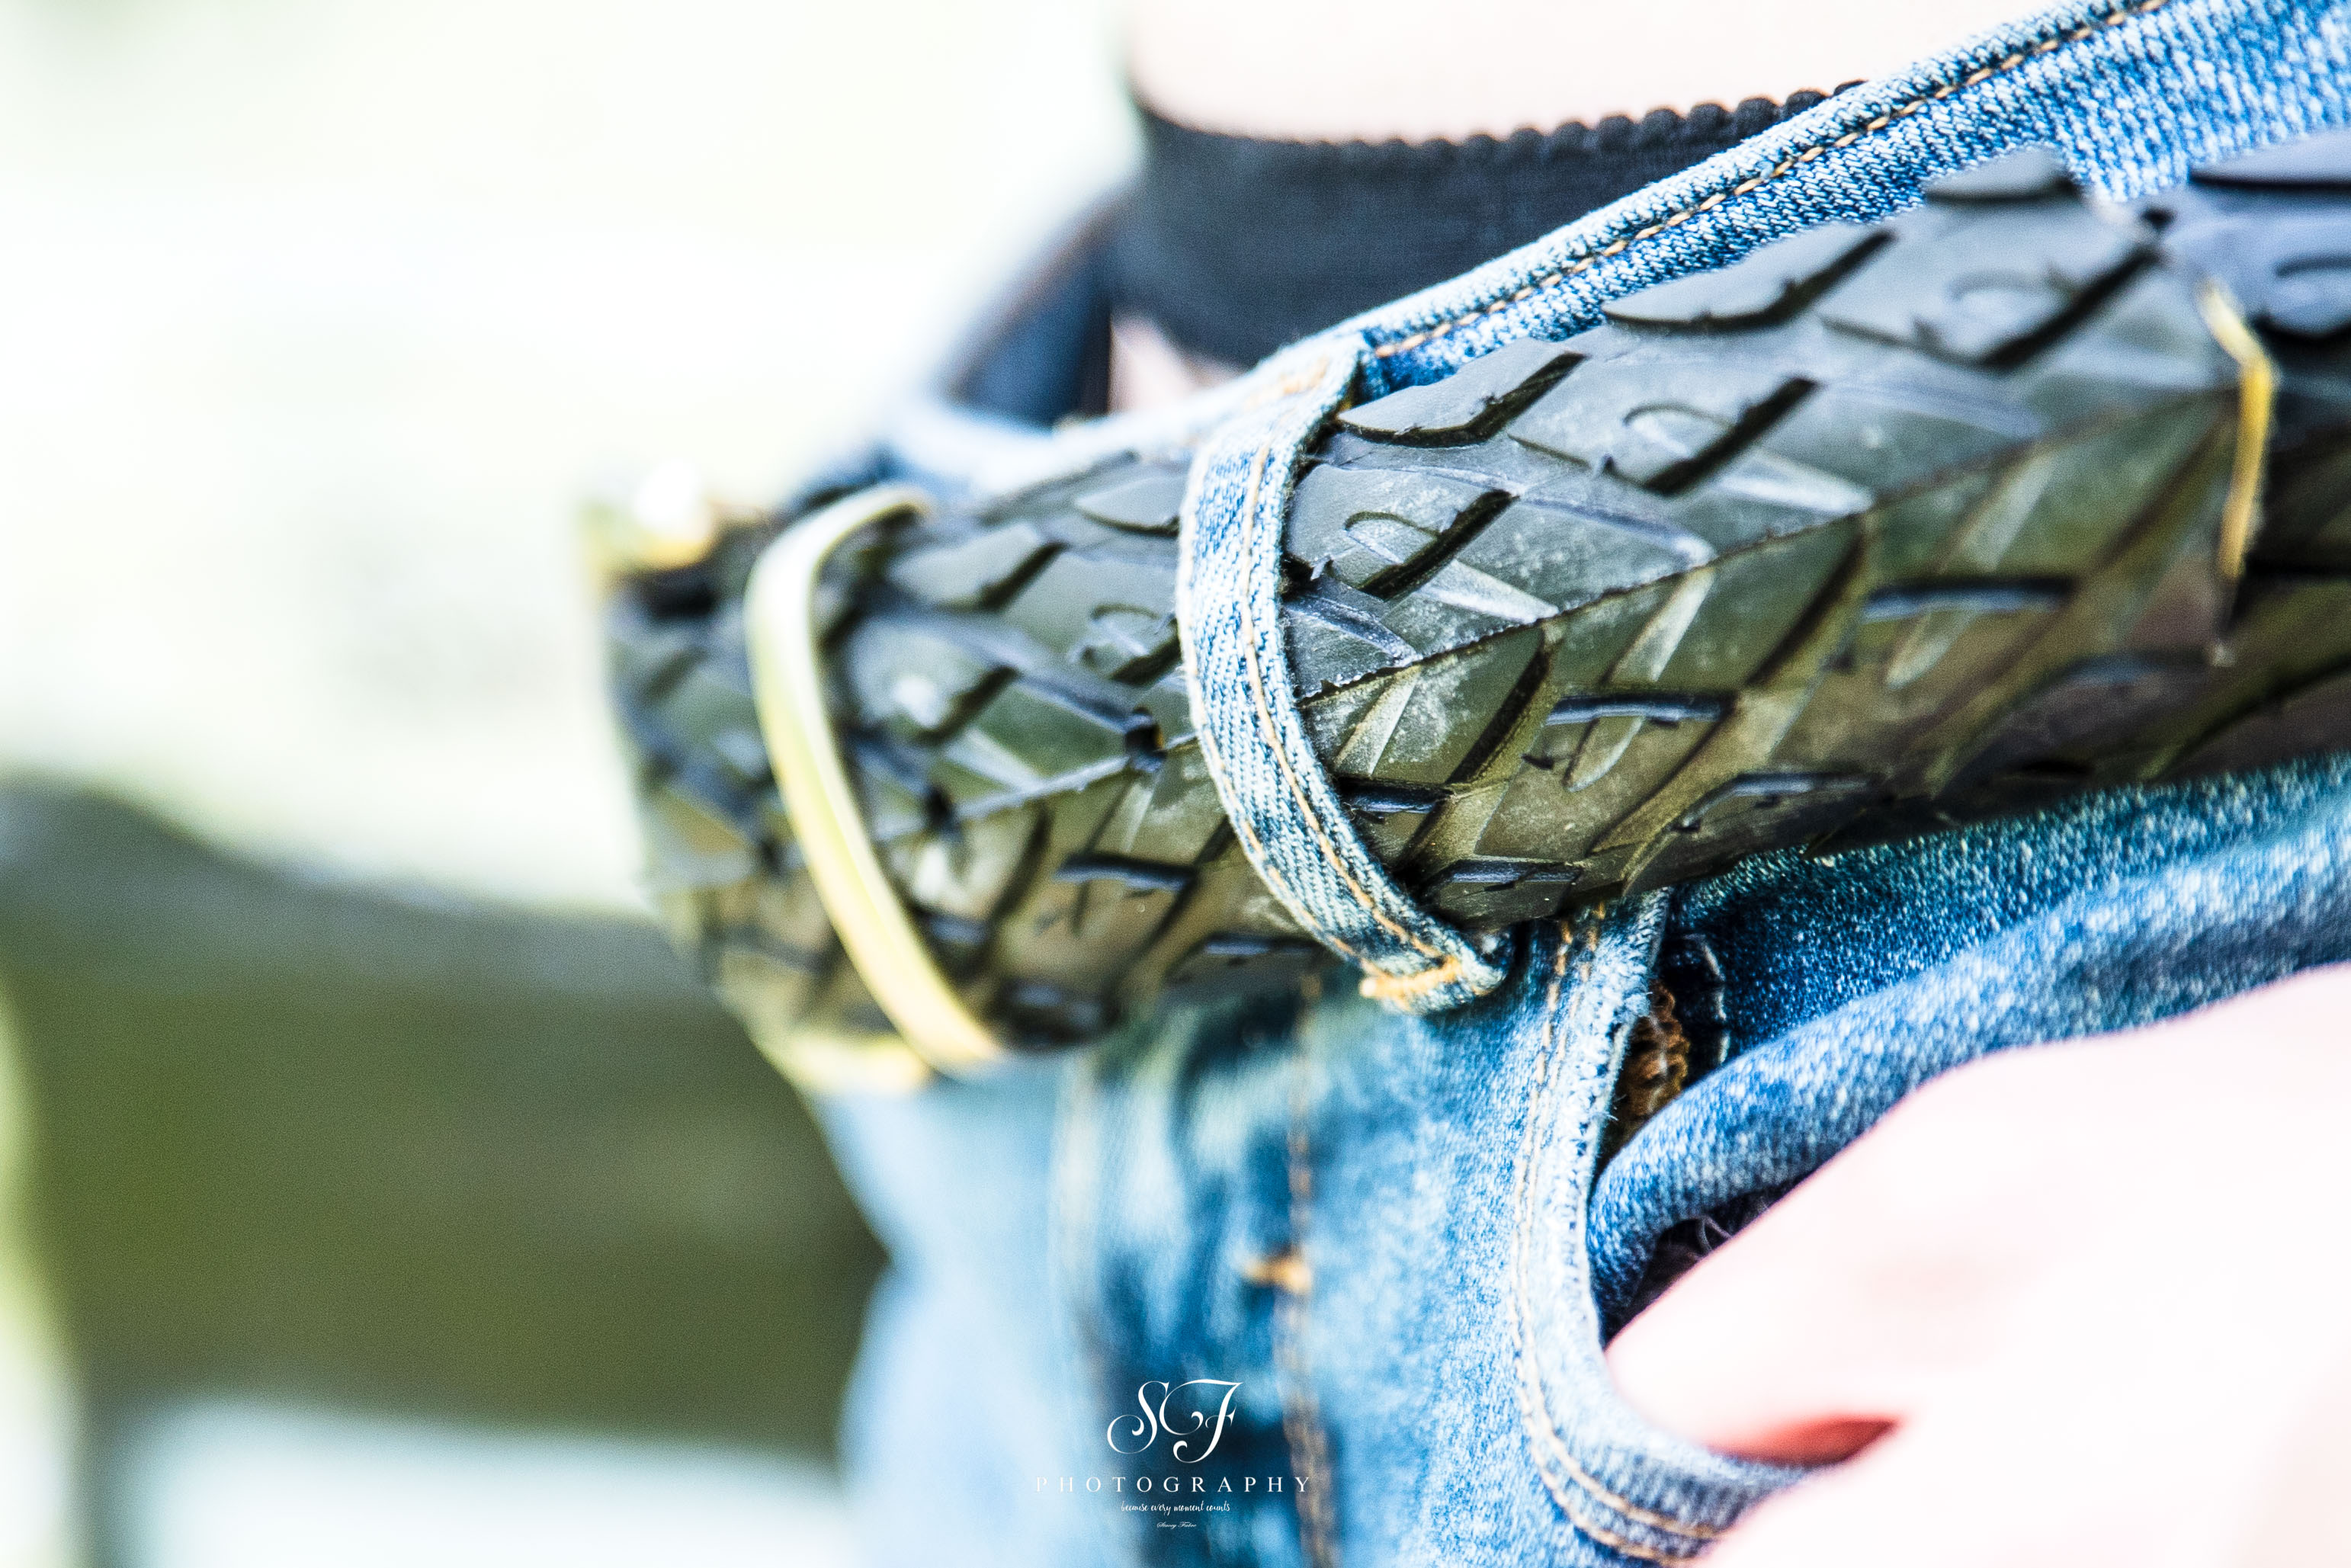 Laura Zabo Upcycled Tyre Fashion Accessories undefined classes in London